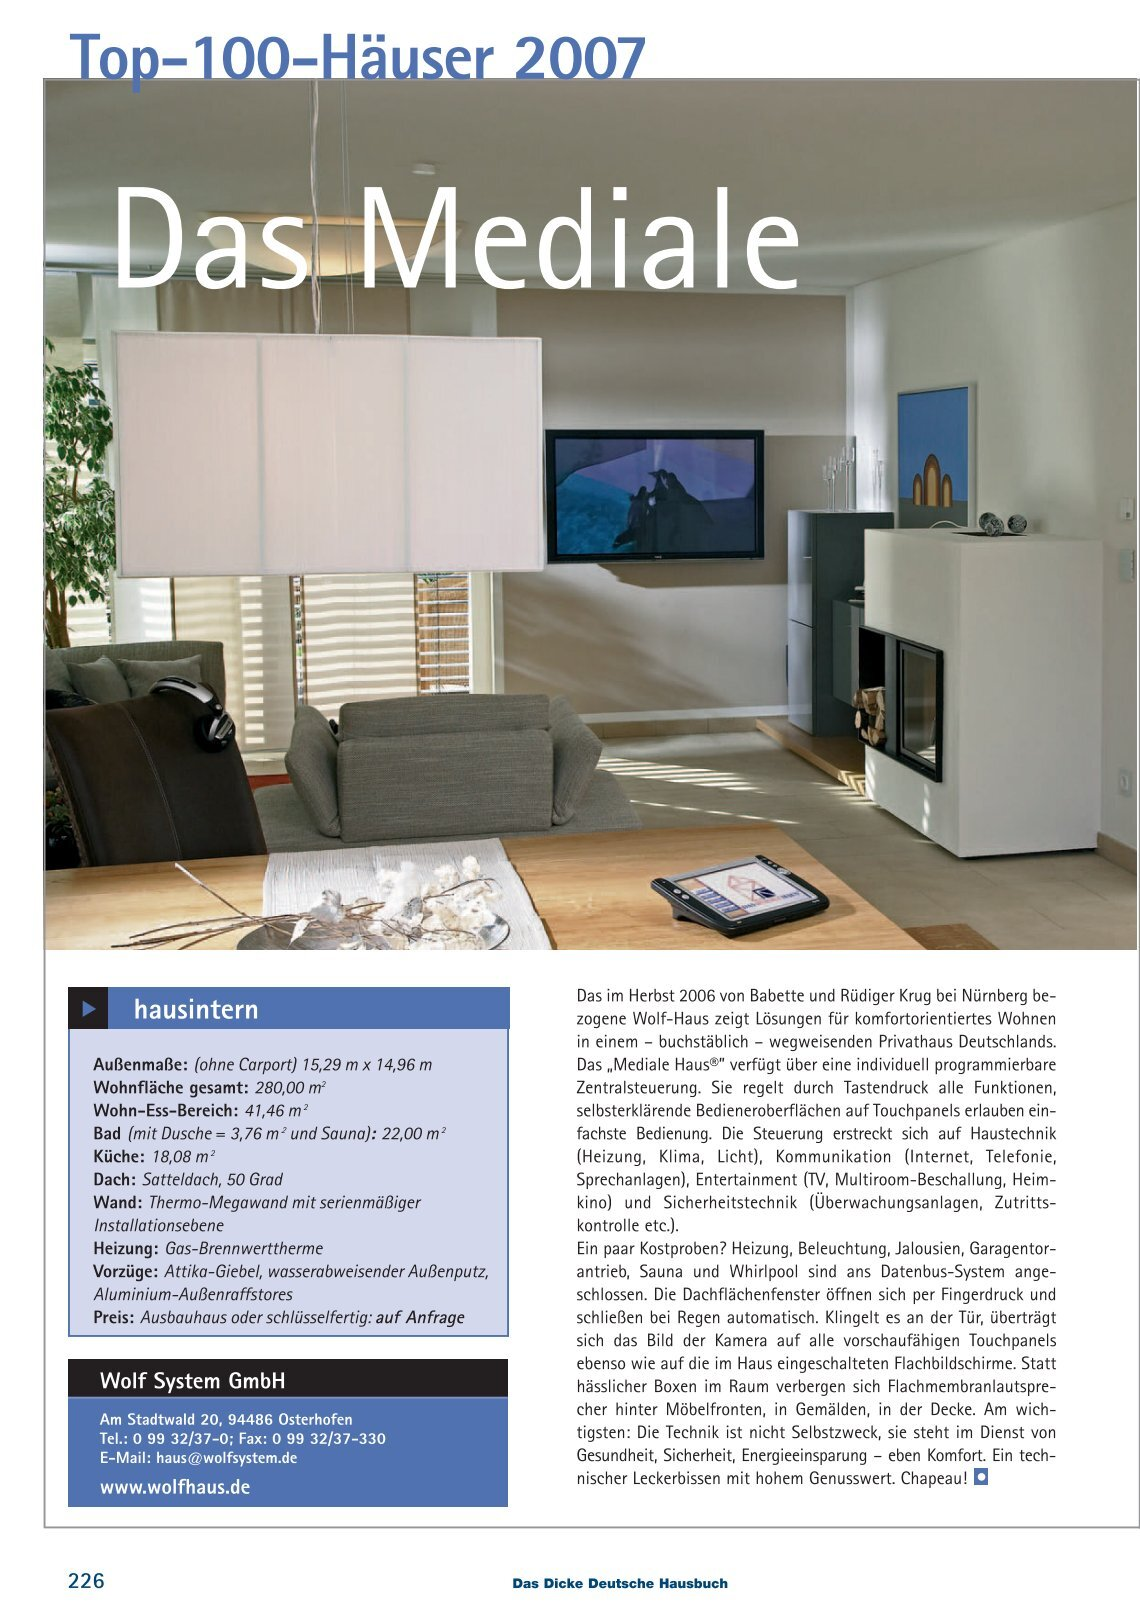 3 free Magazines from DAS.MEDIALE.HAUS.DE